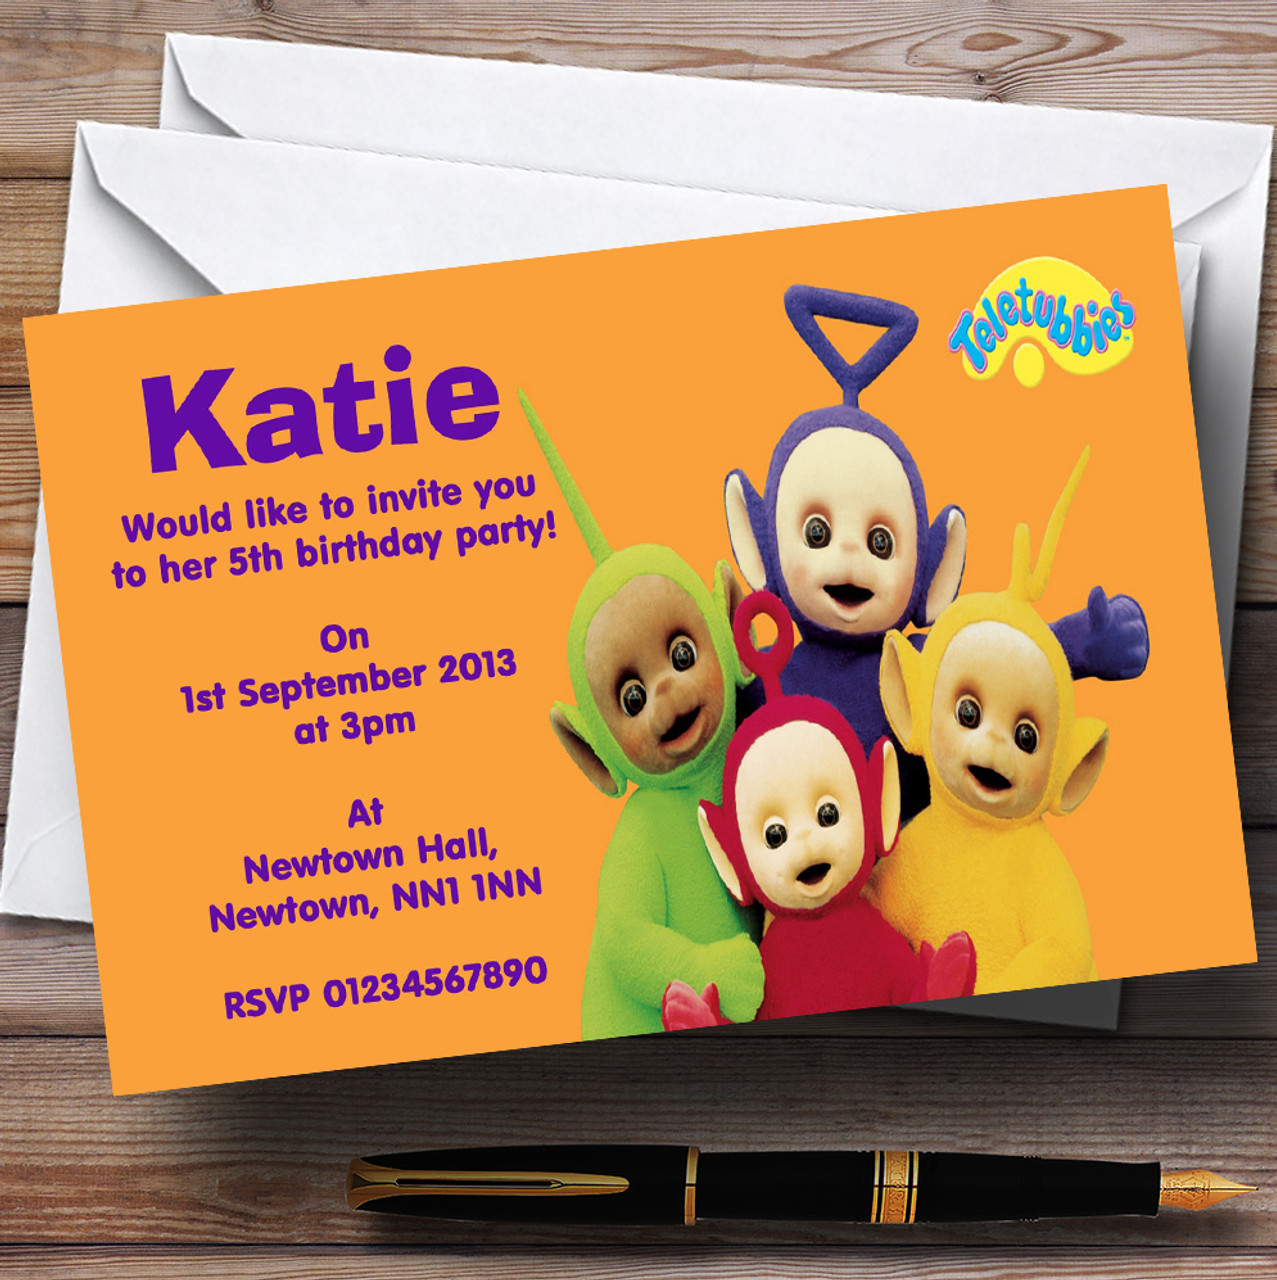 Personalised party invitations page 1 the card zoo teletubbies personalised childrens birthday party invitations solutioingenieria Choice Image